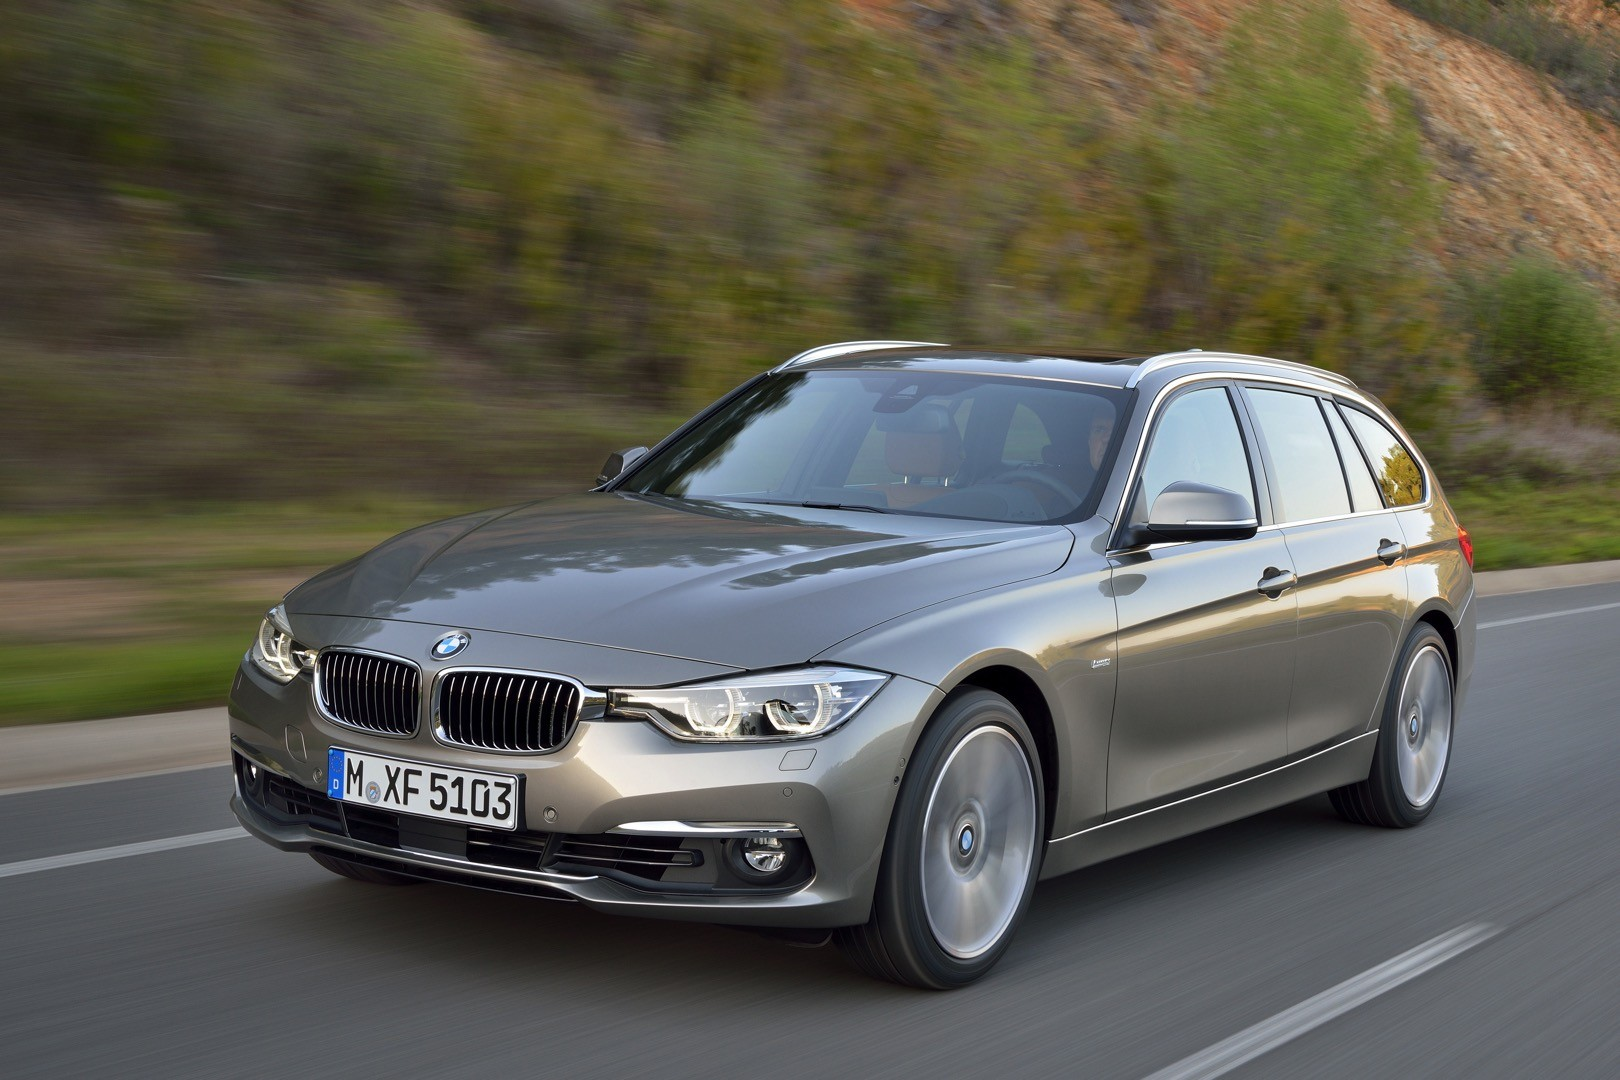 2016 Bmw 3 Series Facelift Officially Unveiled With New